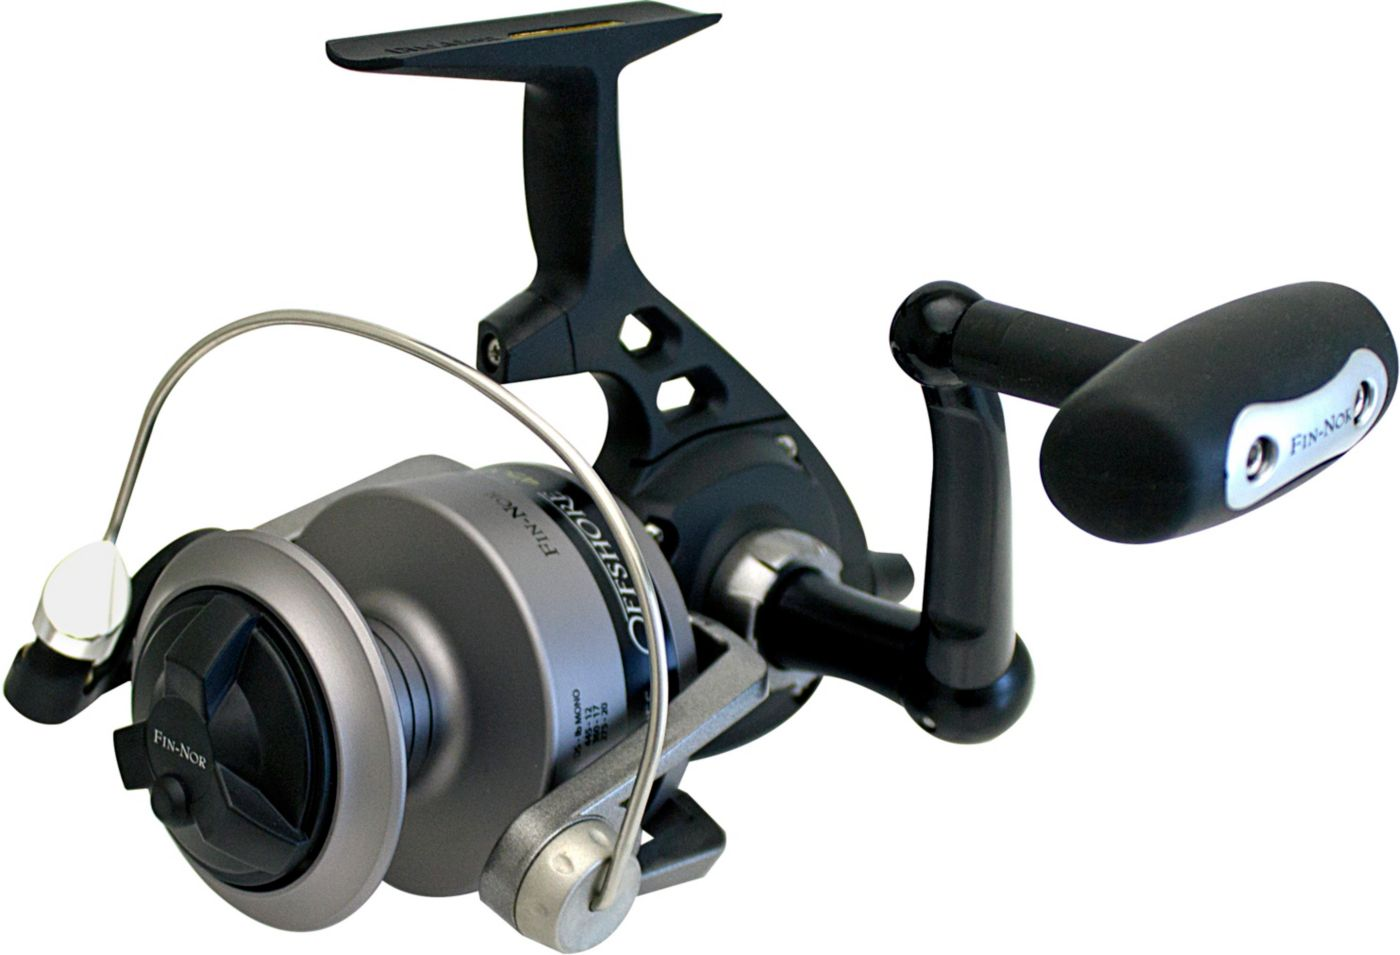 Fin-Nor Offshore Spinning Reel